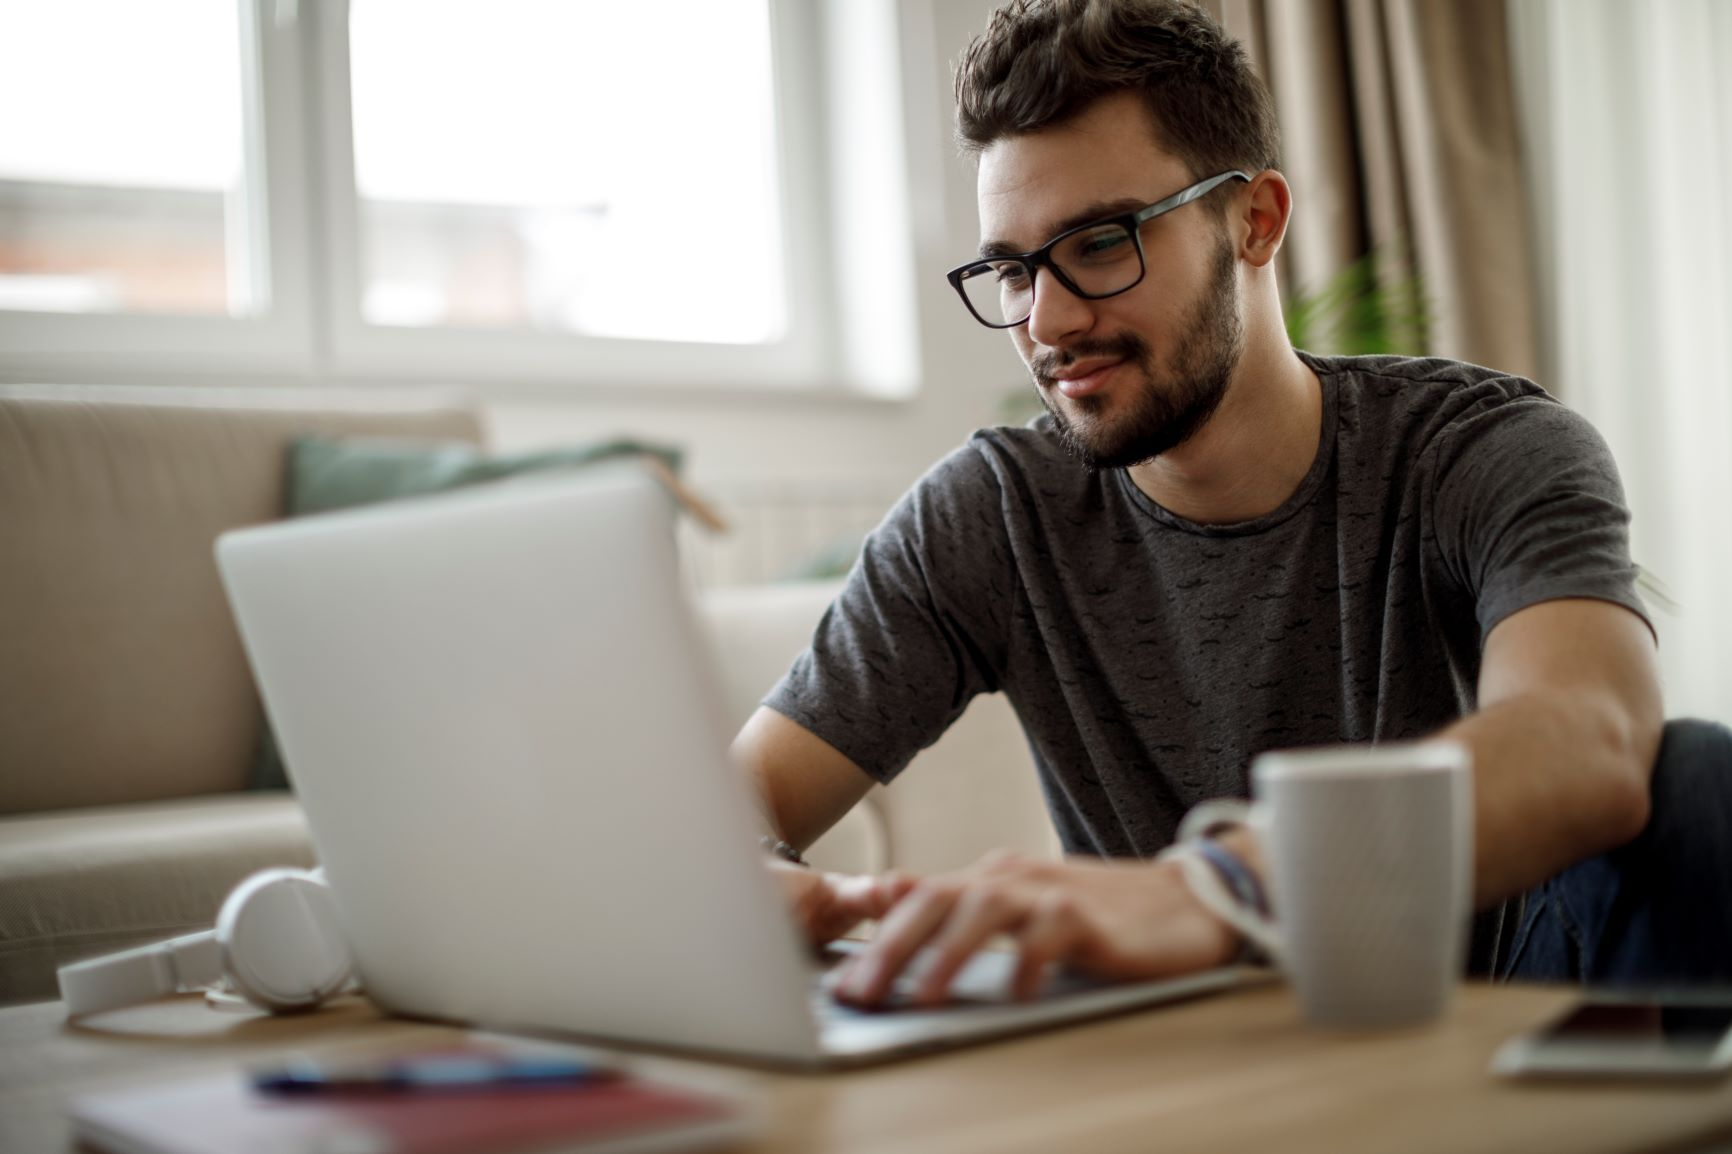 man-learning-on-laptop-at-home